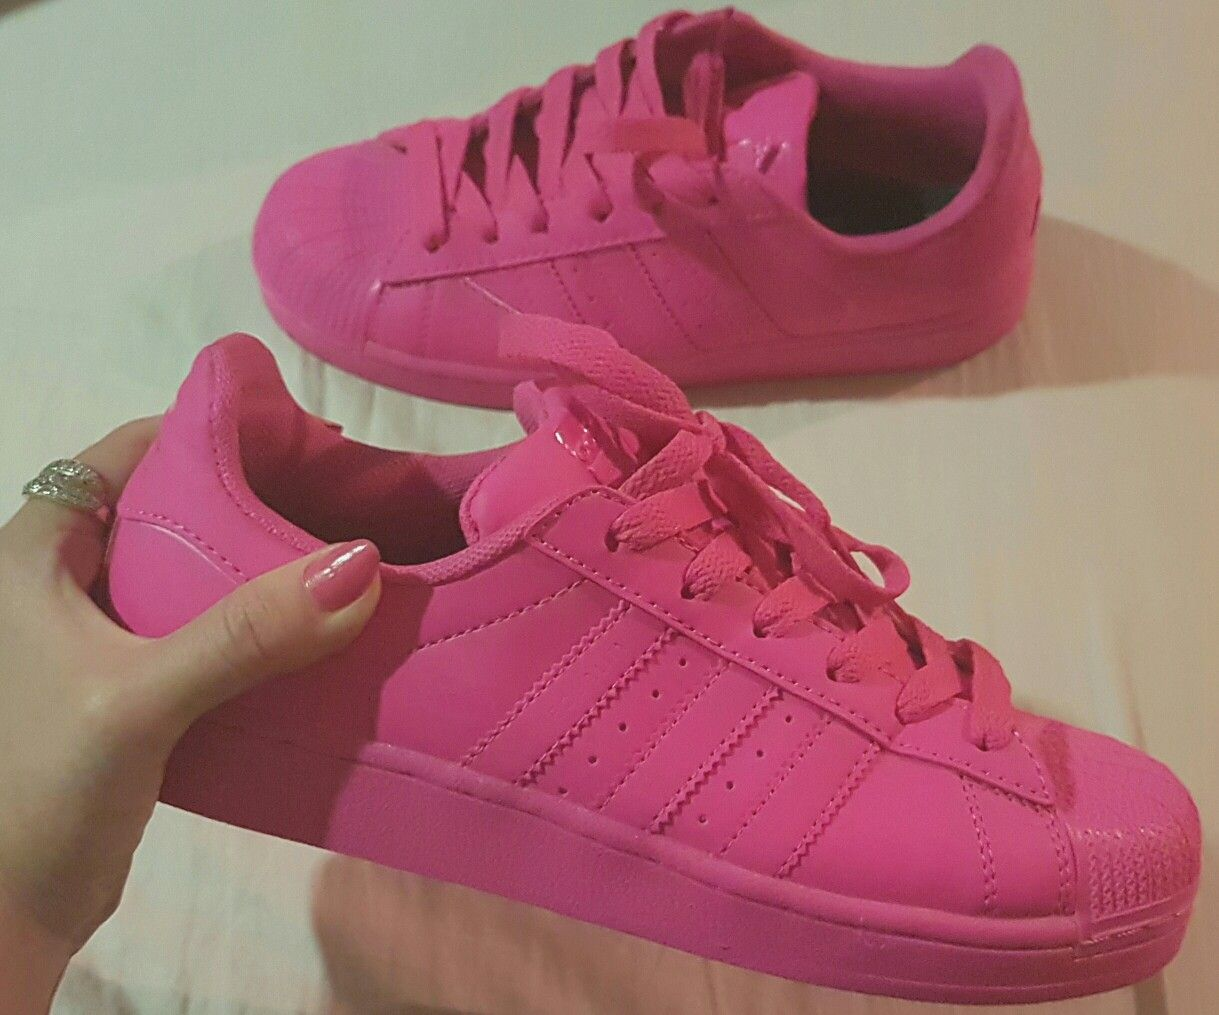 best loved 0f4ce 3cc44 Adidas superstar colors pink, Pharrell Williams | Shoes ...